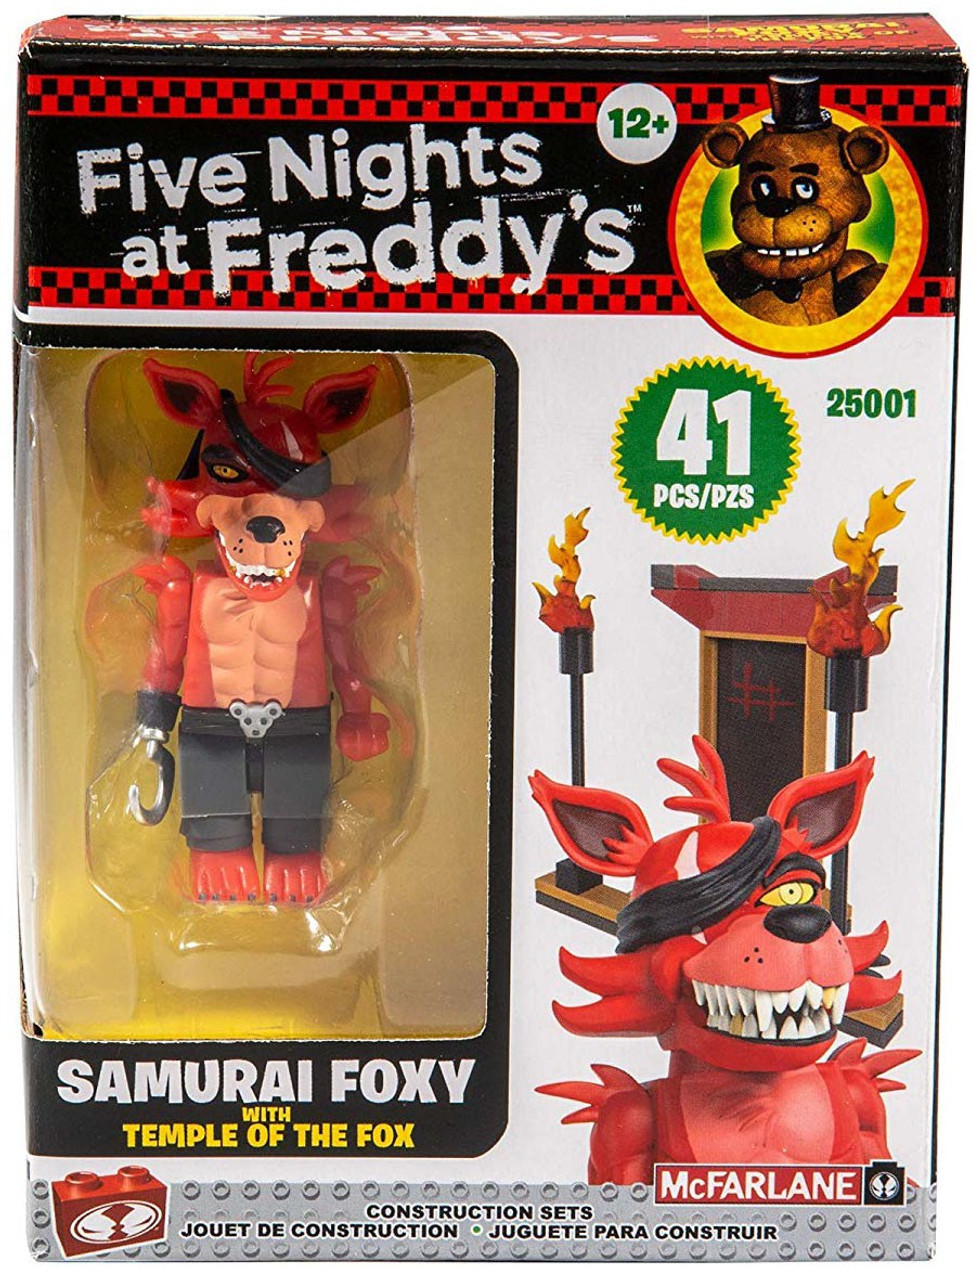 McFarlane Toys Five Nights at Freddy's Temple of the Fox Build Set  (Pre-Order ships September)